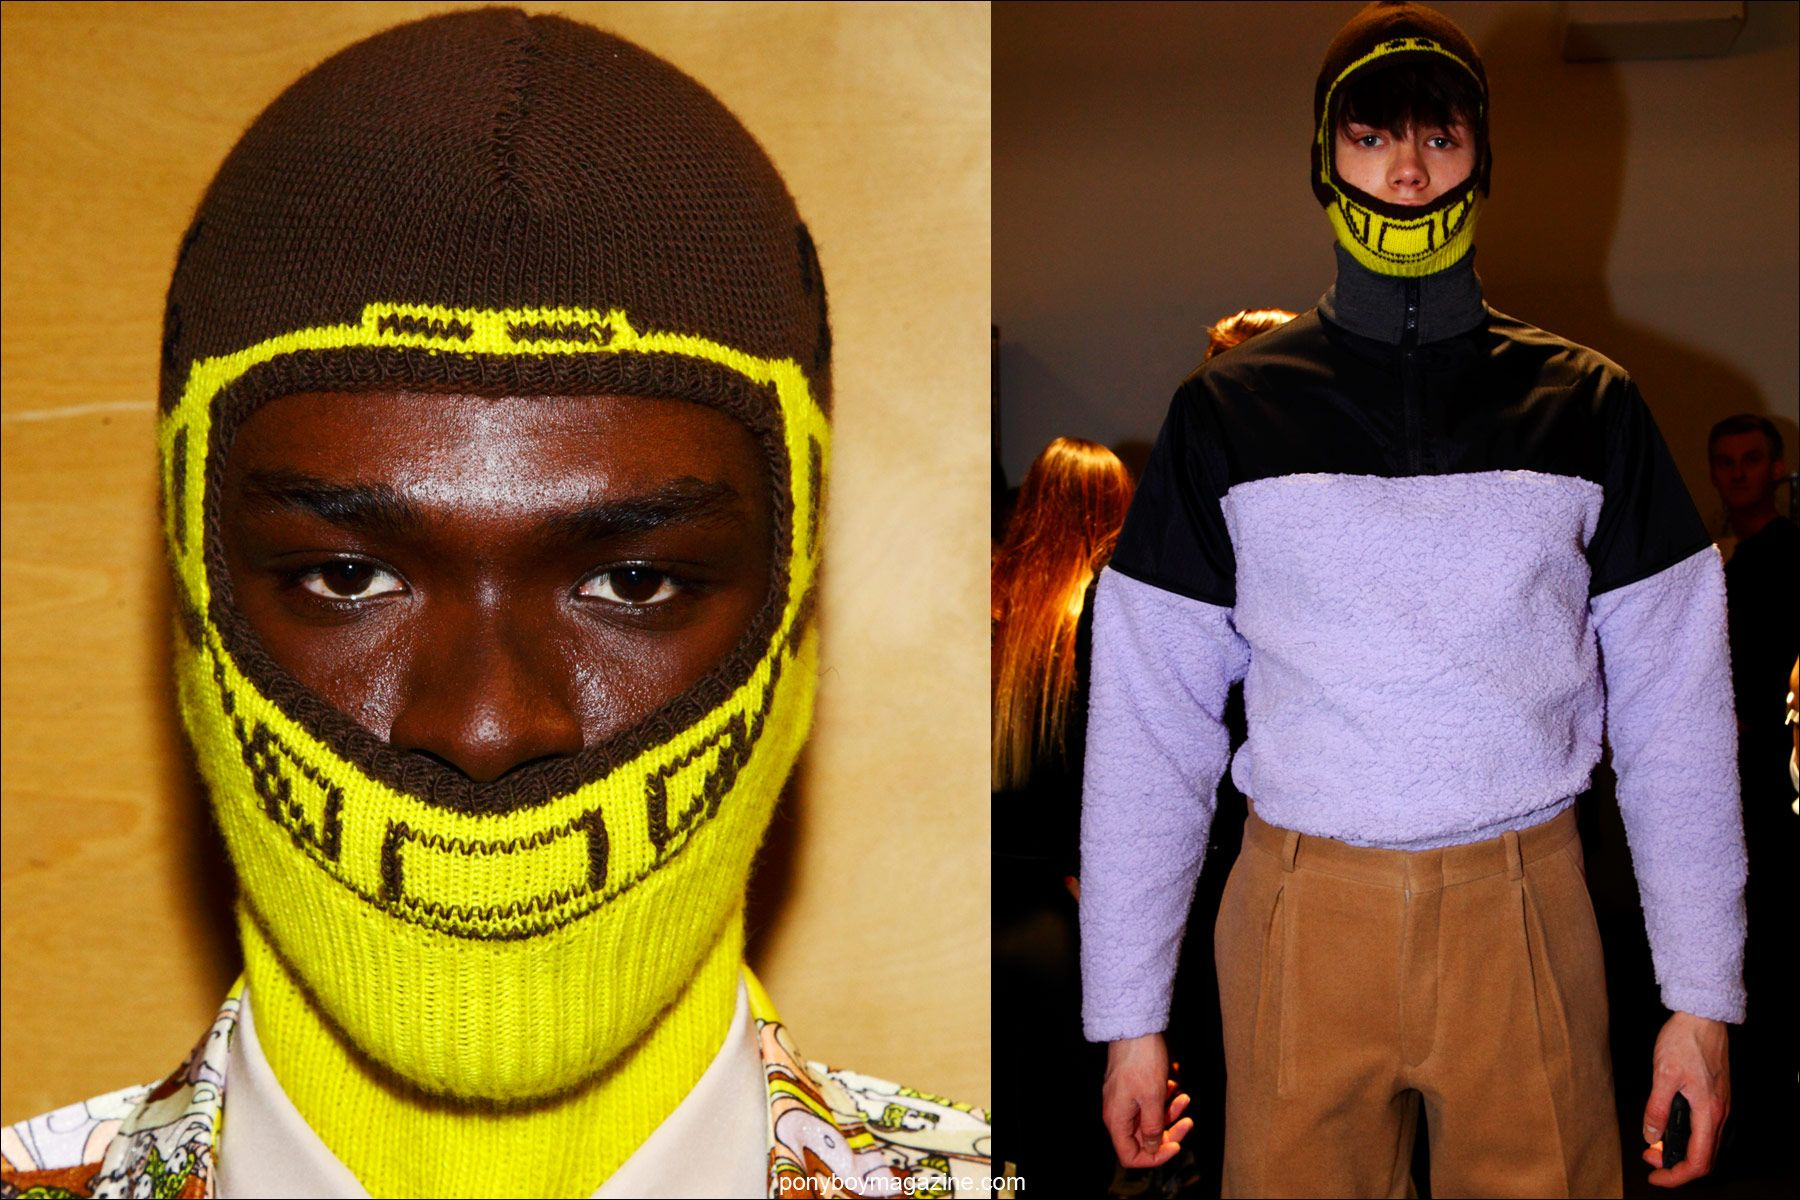 Ski masks by menswear designer Martin Keehn, F/W15 collection, at Pier 59 Studios New York. Photos by Ponyboy magazine photographer Alexander Thompson.